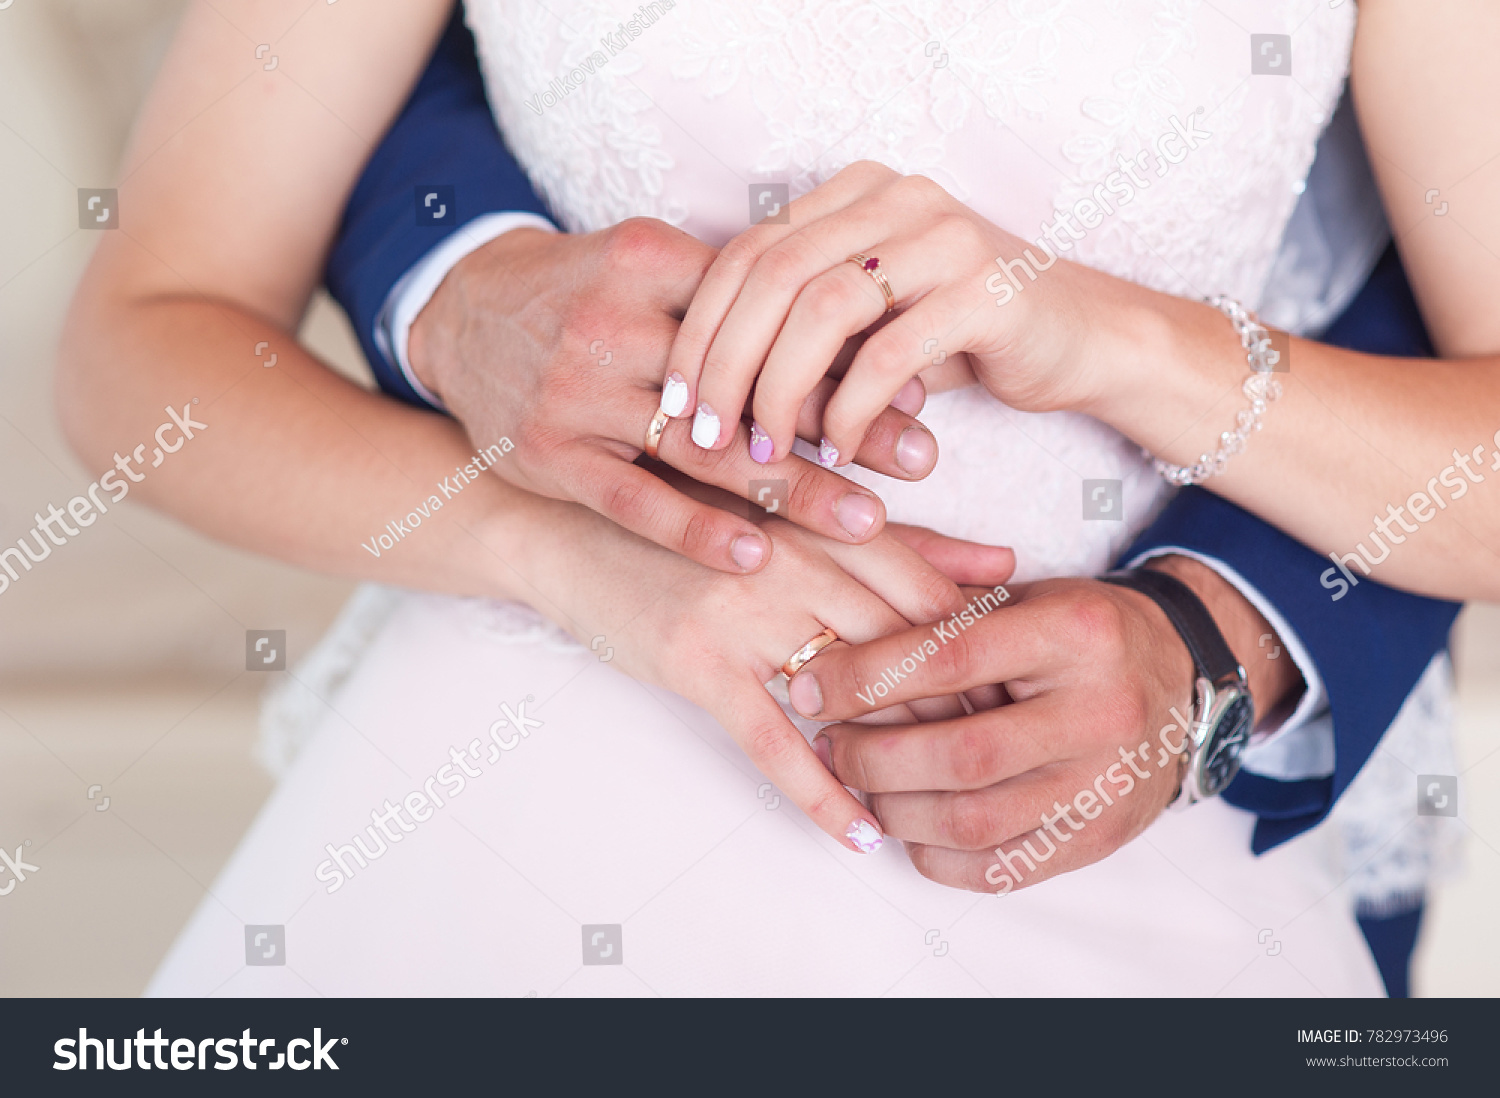 Hand Man Woman Hand Engagement Ring Stock Photo (Royalty Free ...